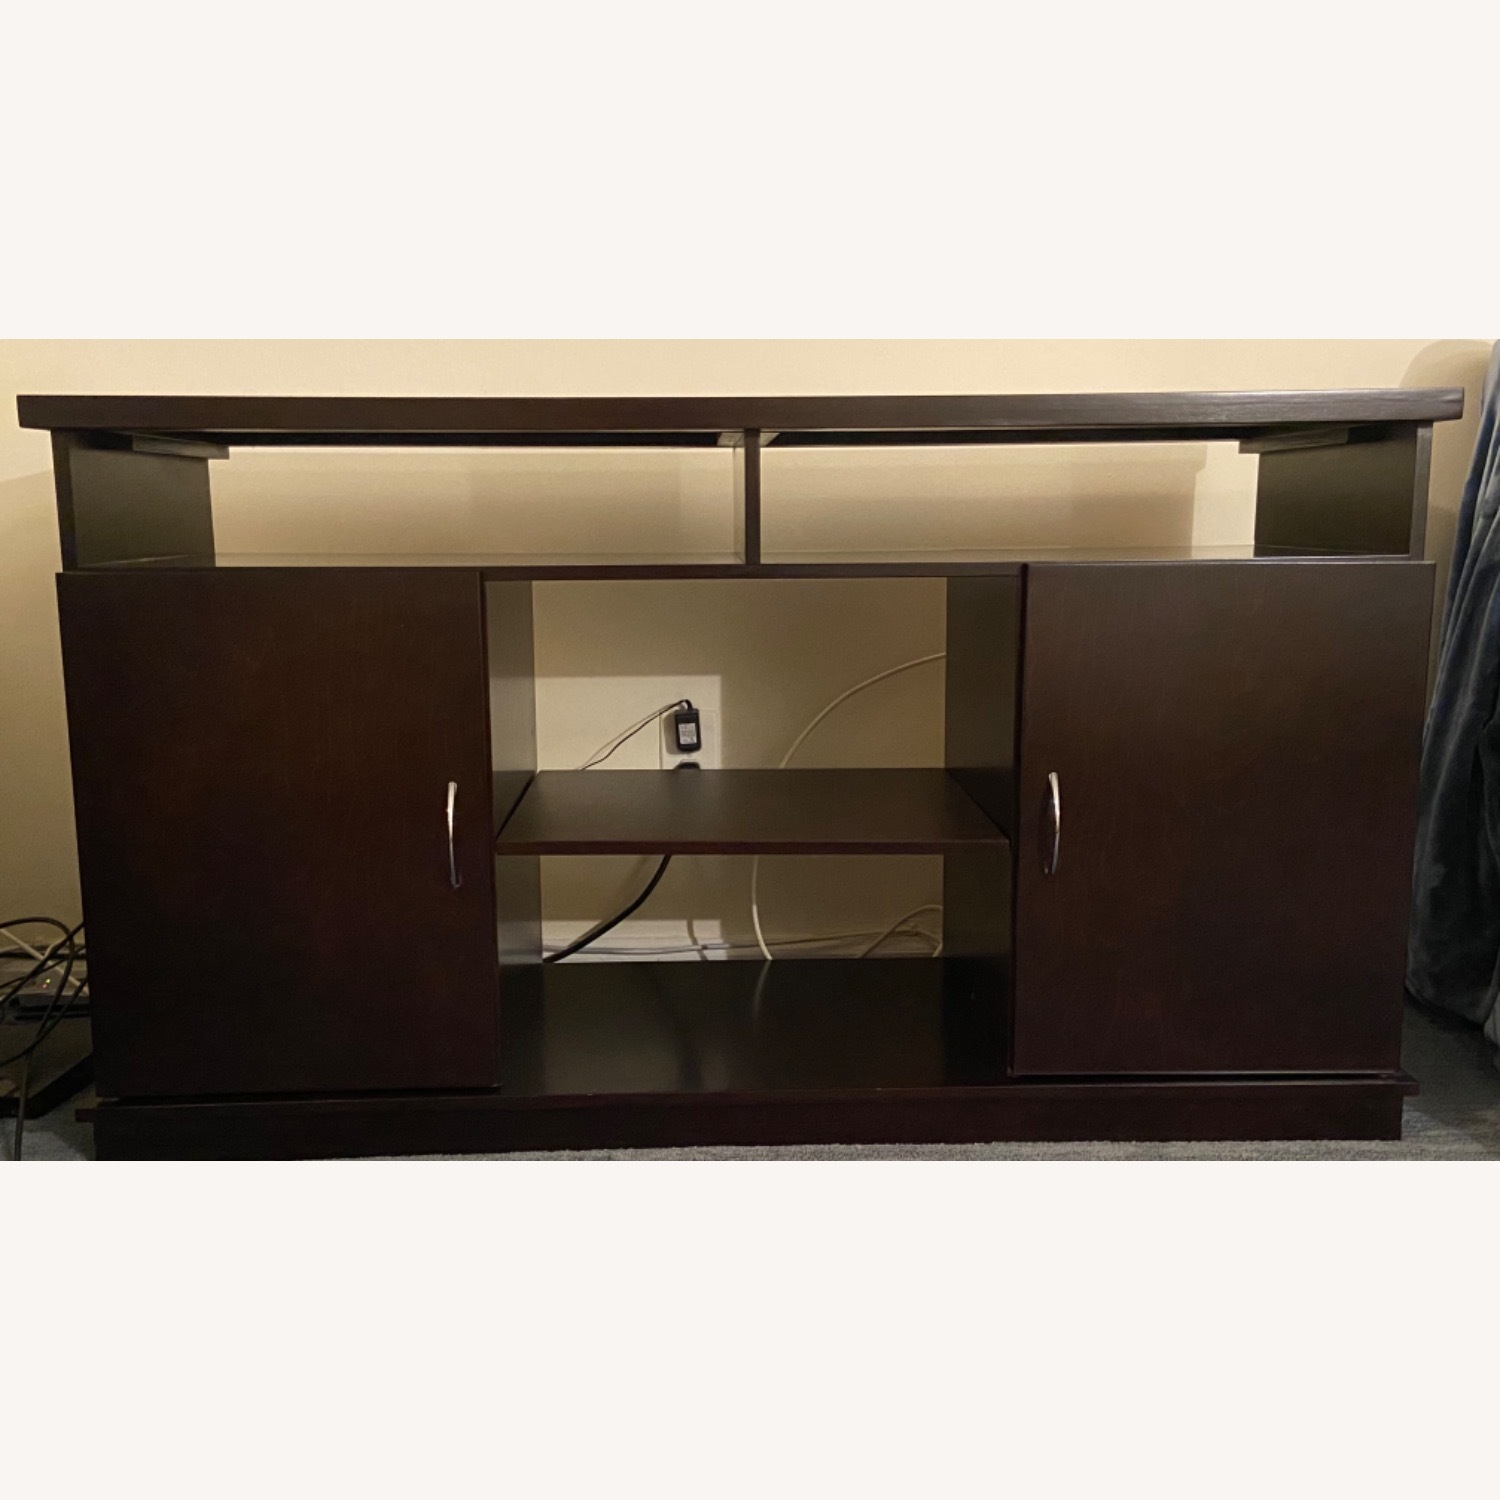 Gothic Cabinet Craft TV Stand w/ 2 Doors - image-1